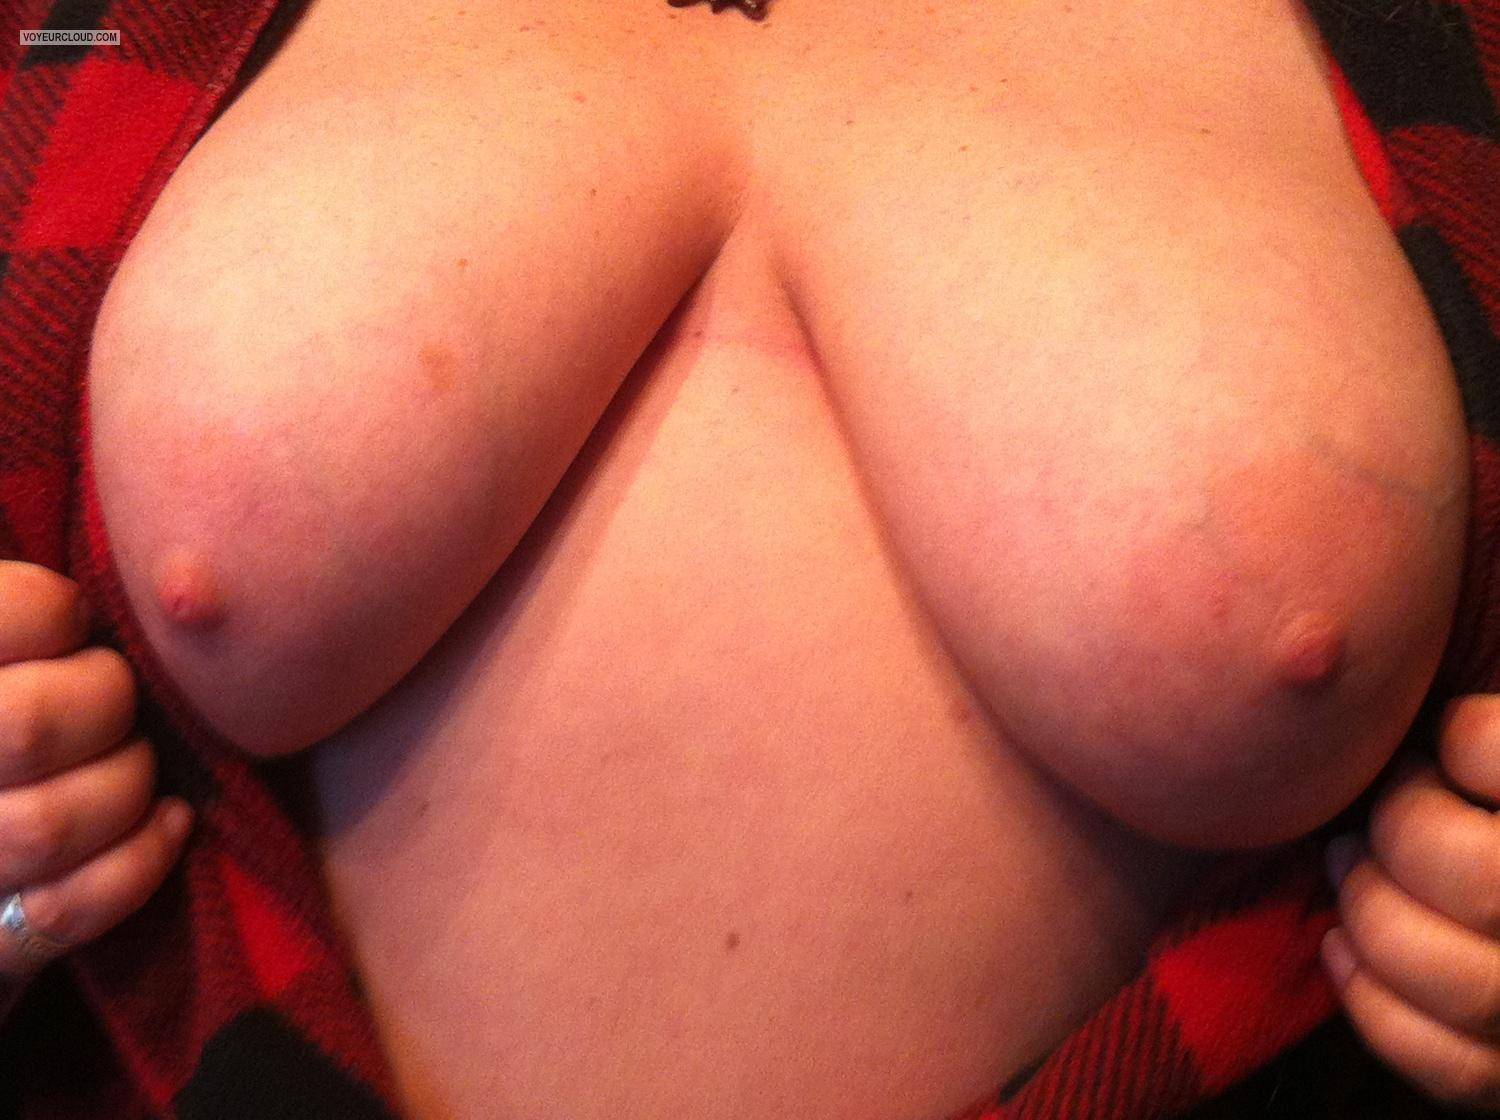 Tit Flash: Big Tits By IPhone - Stella from United States